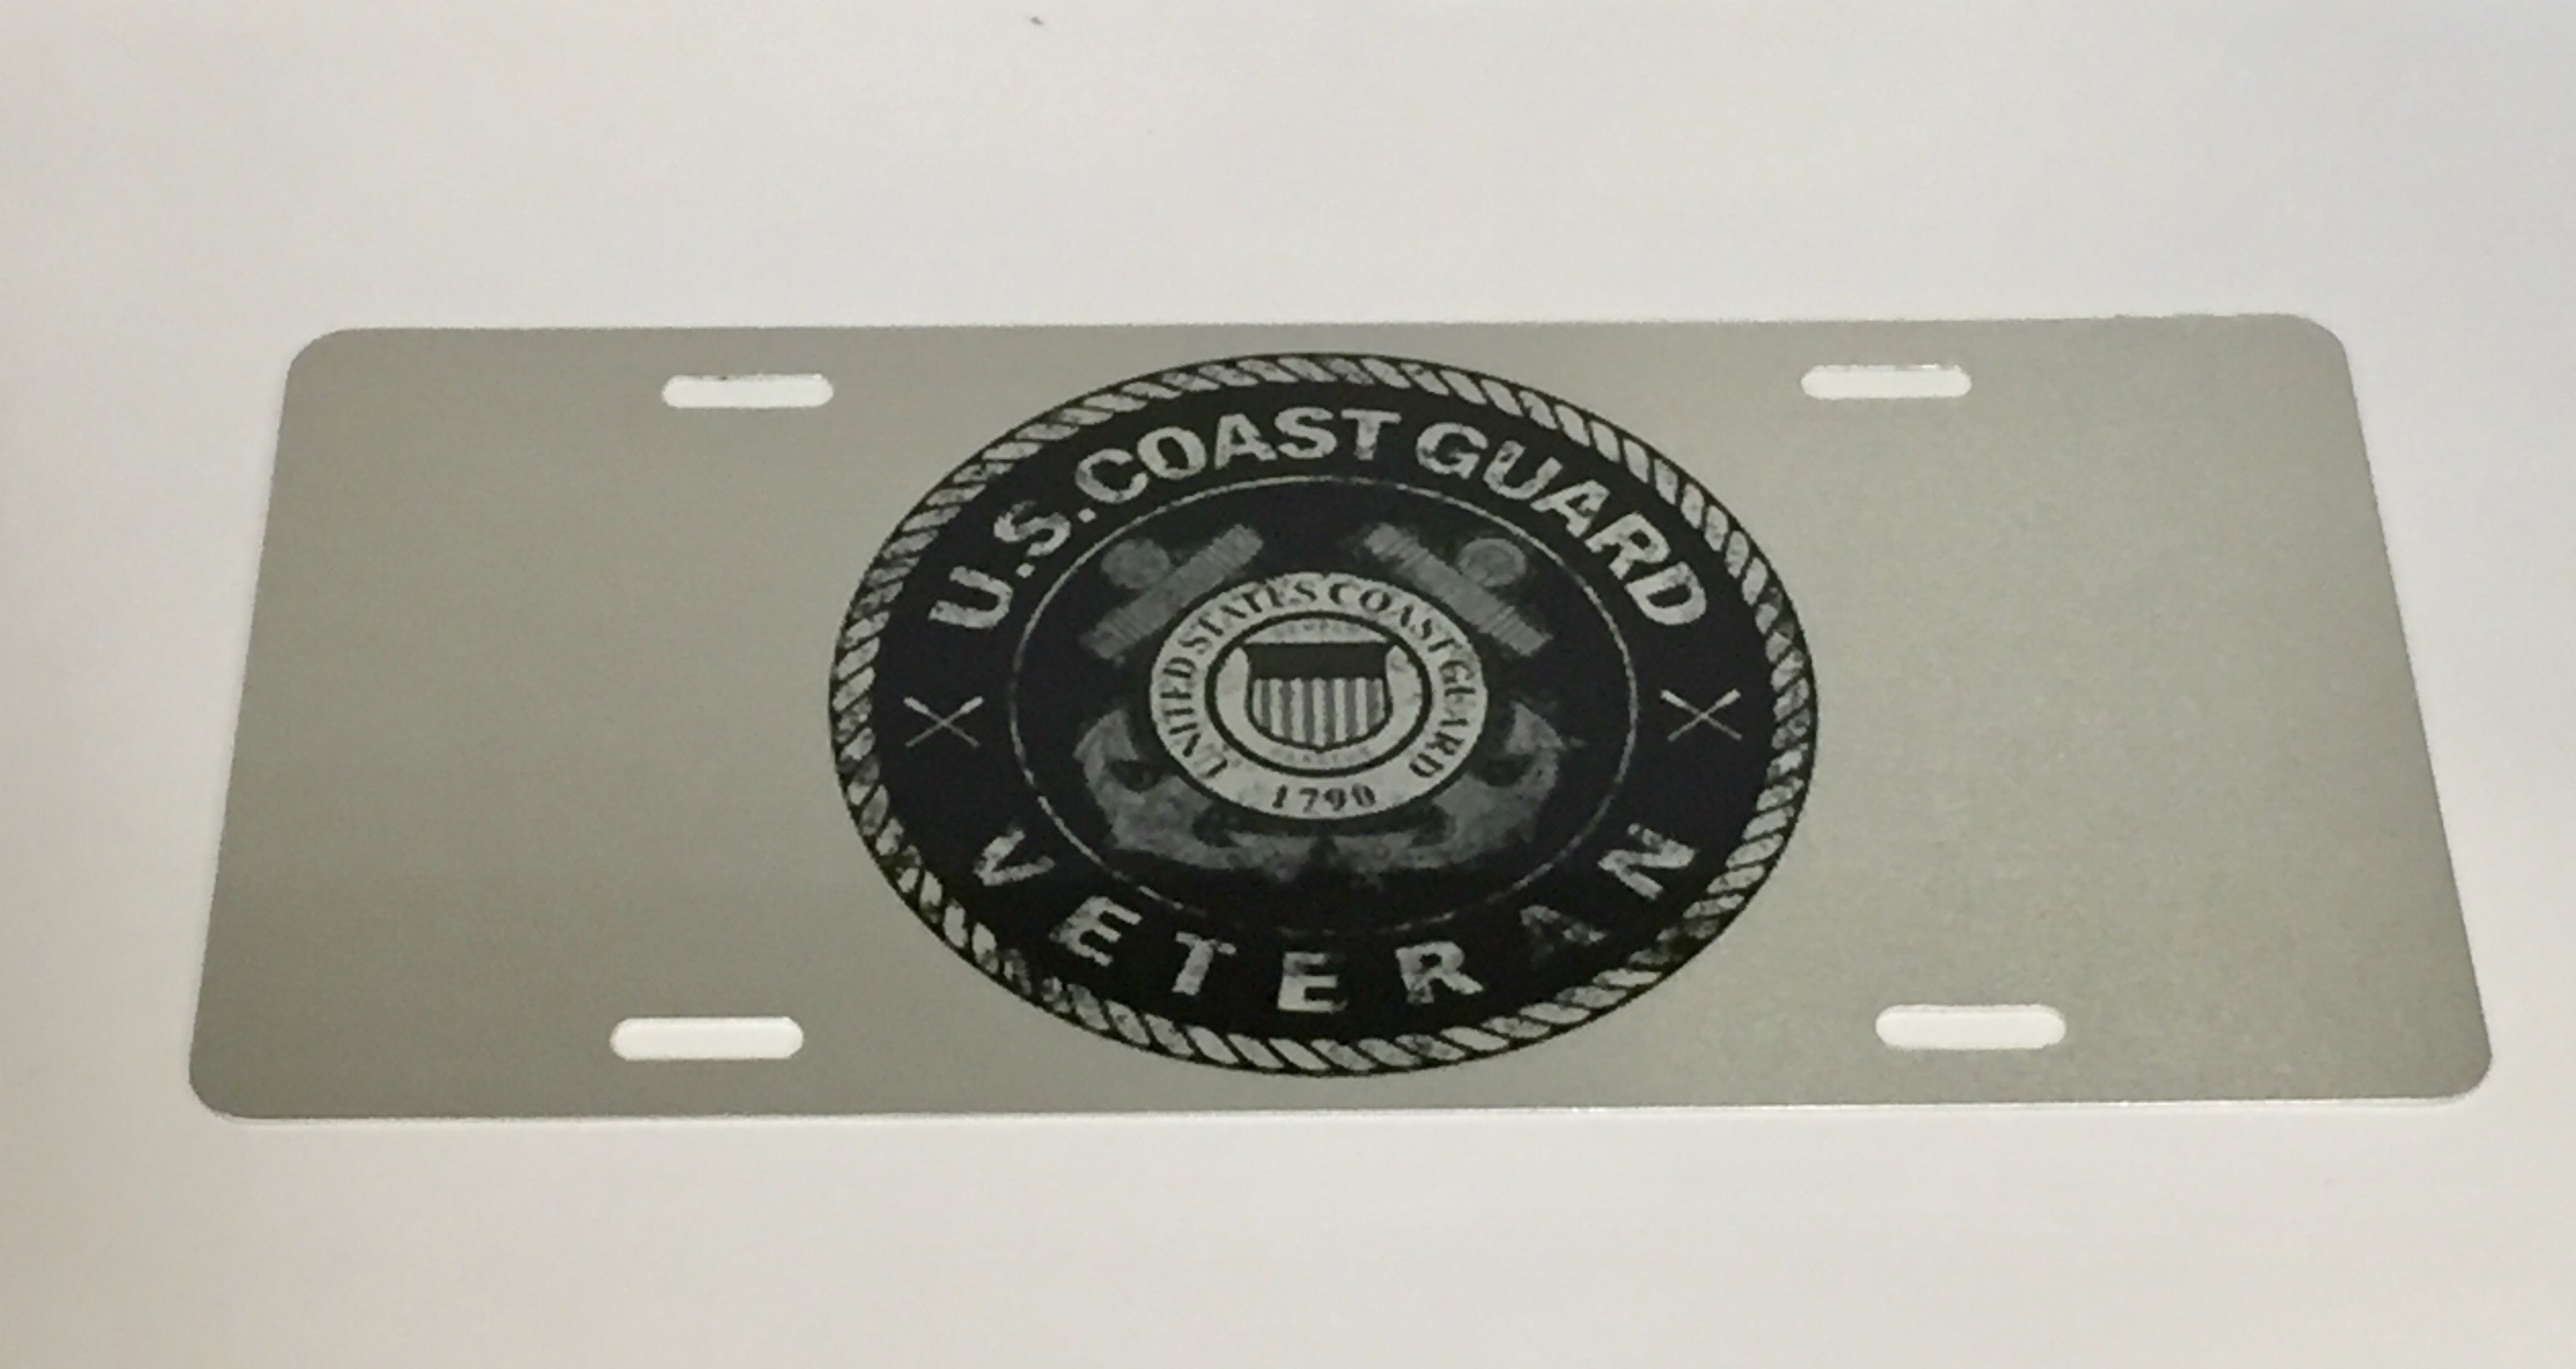 Coast Guard Veteran License Plate